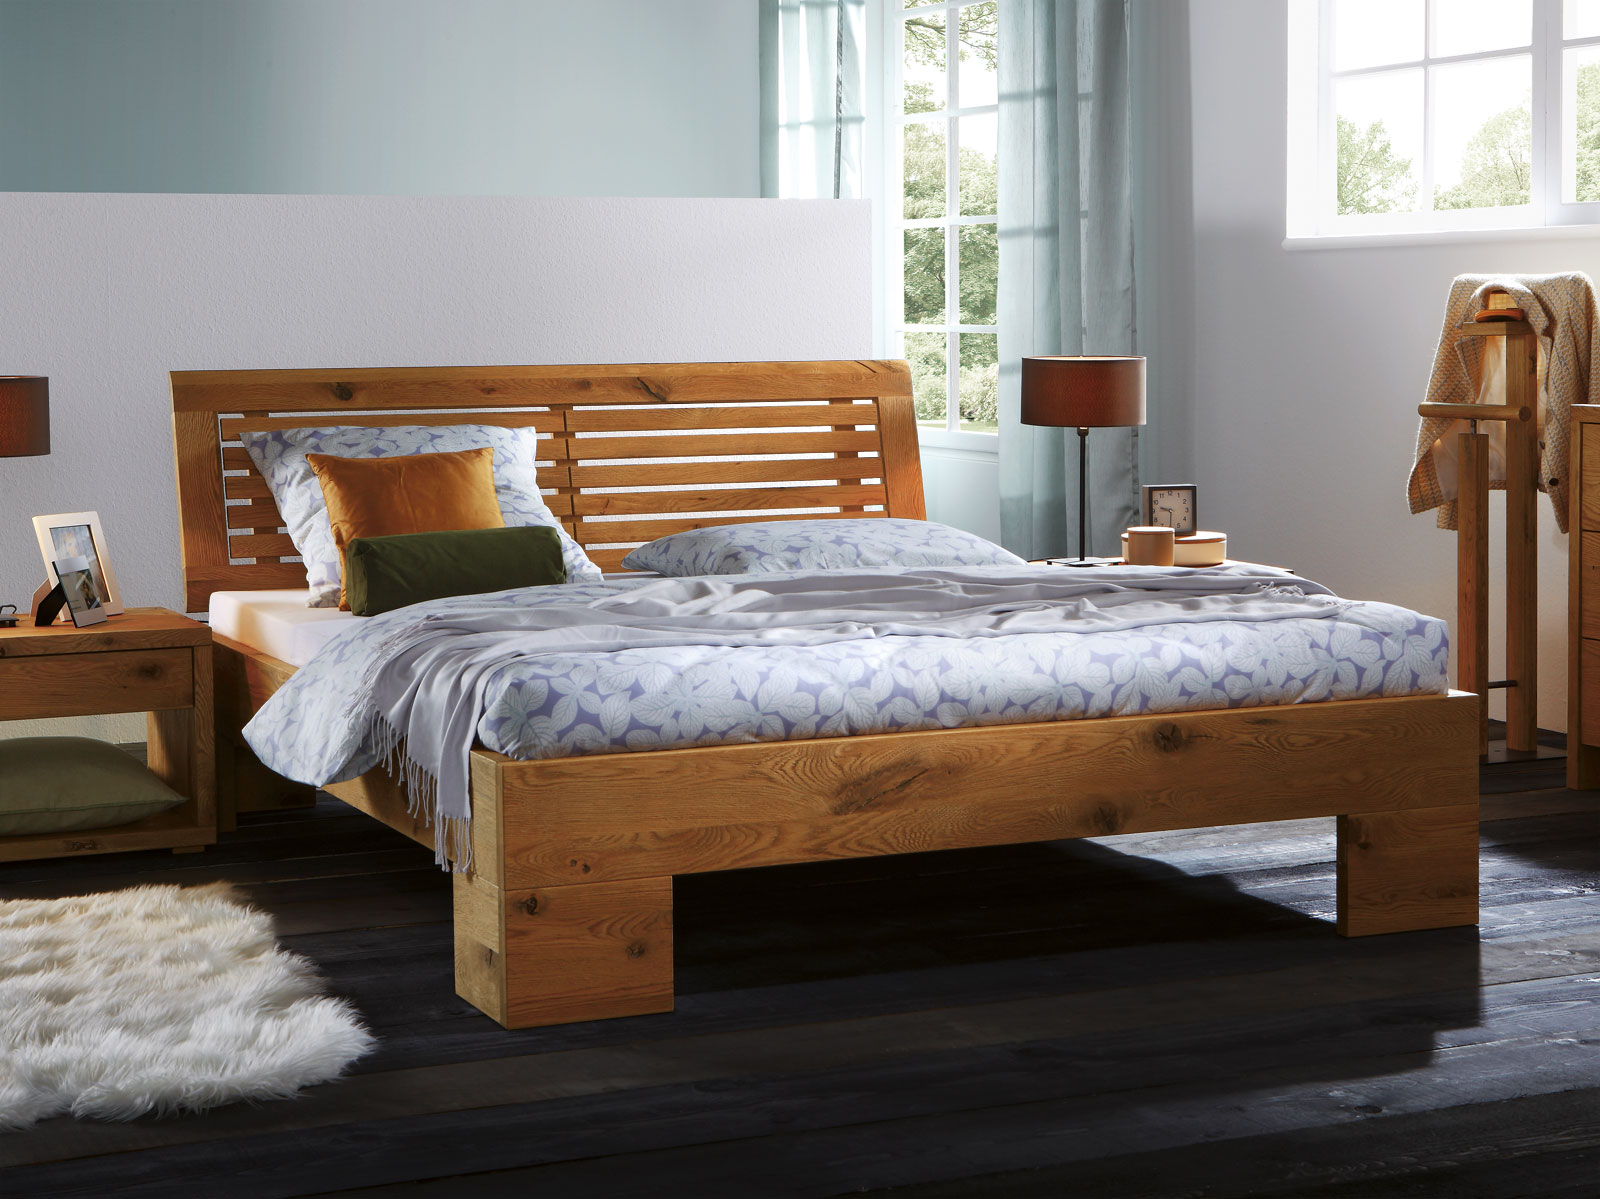 sam massiv holzbett jessica in wildeiche ge lt bett mit. Black Bedroom Furniture Sets. Home Design Ideas